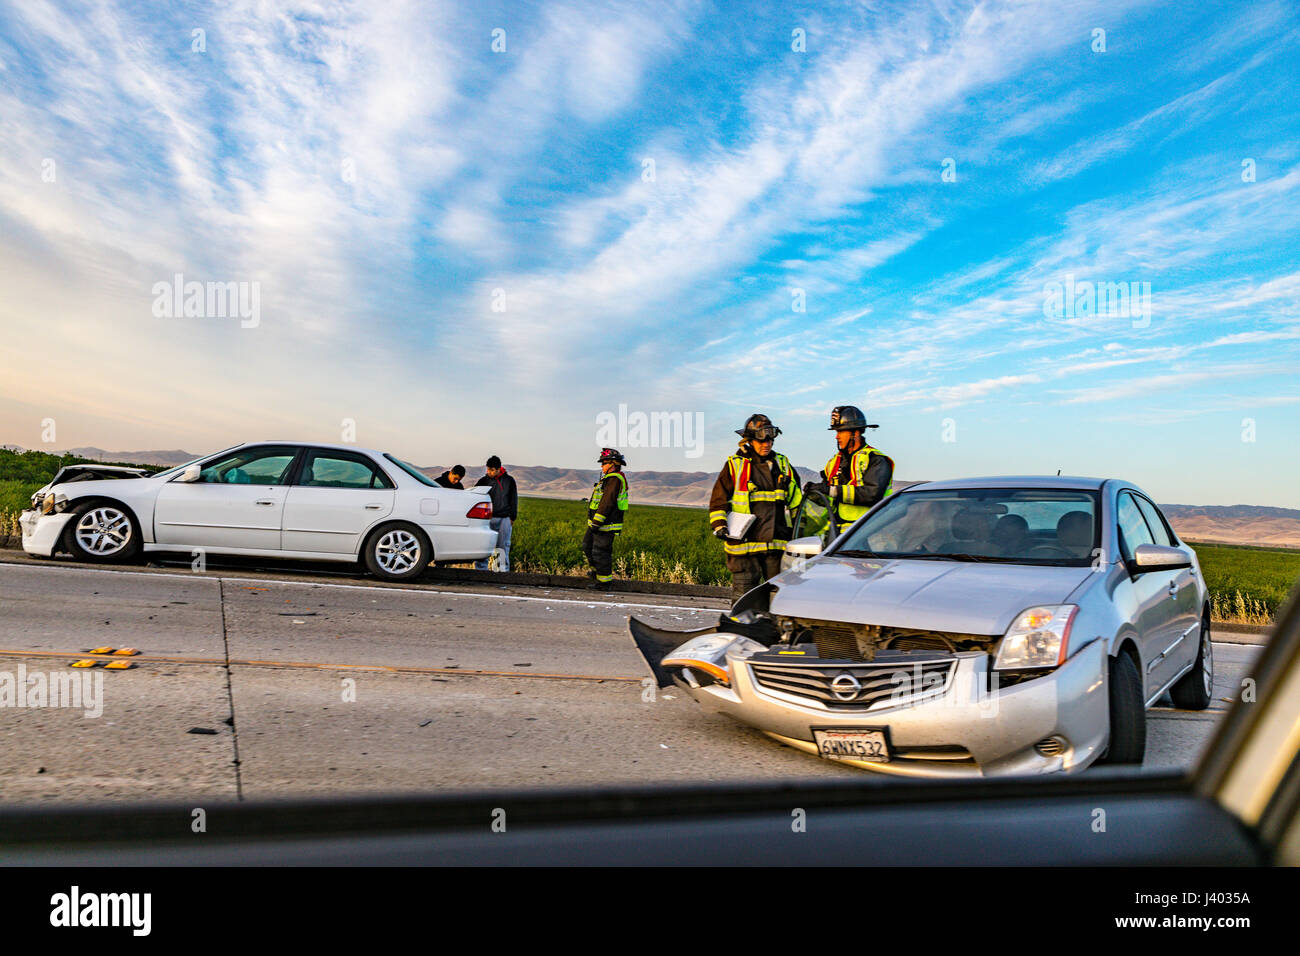 a-two-car-accident-on-the-california-hig